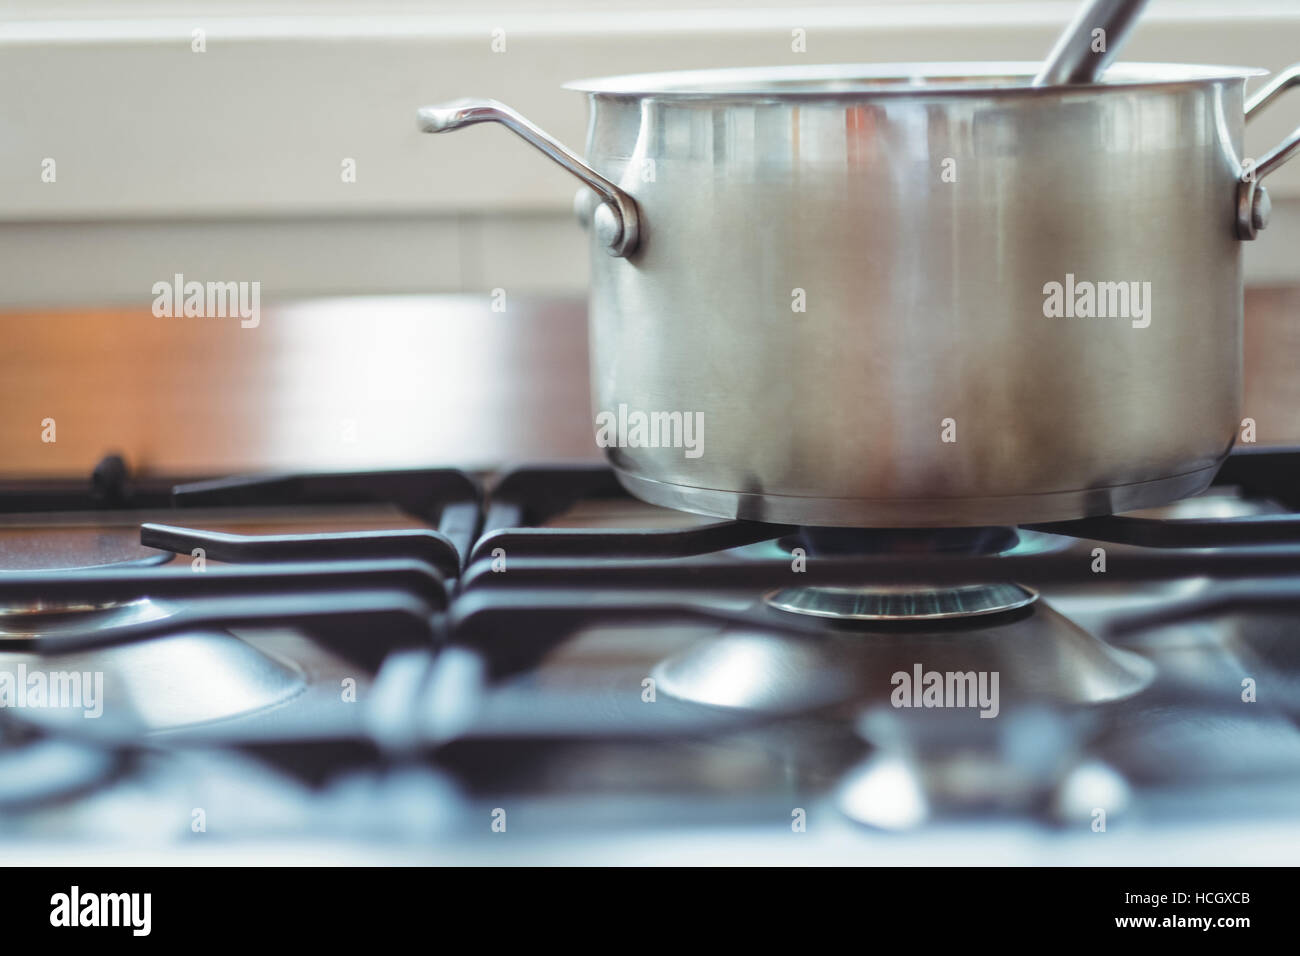 Cooking pot kept on a stove while cooking - Stock Image